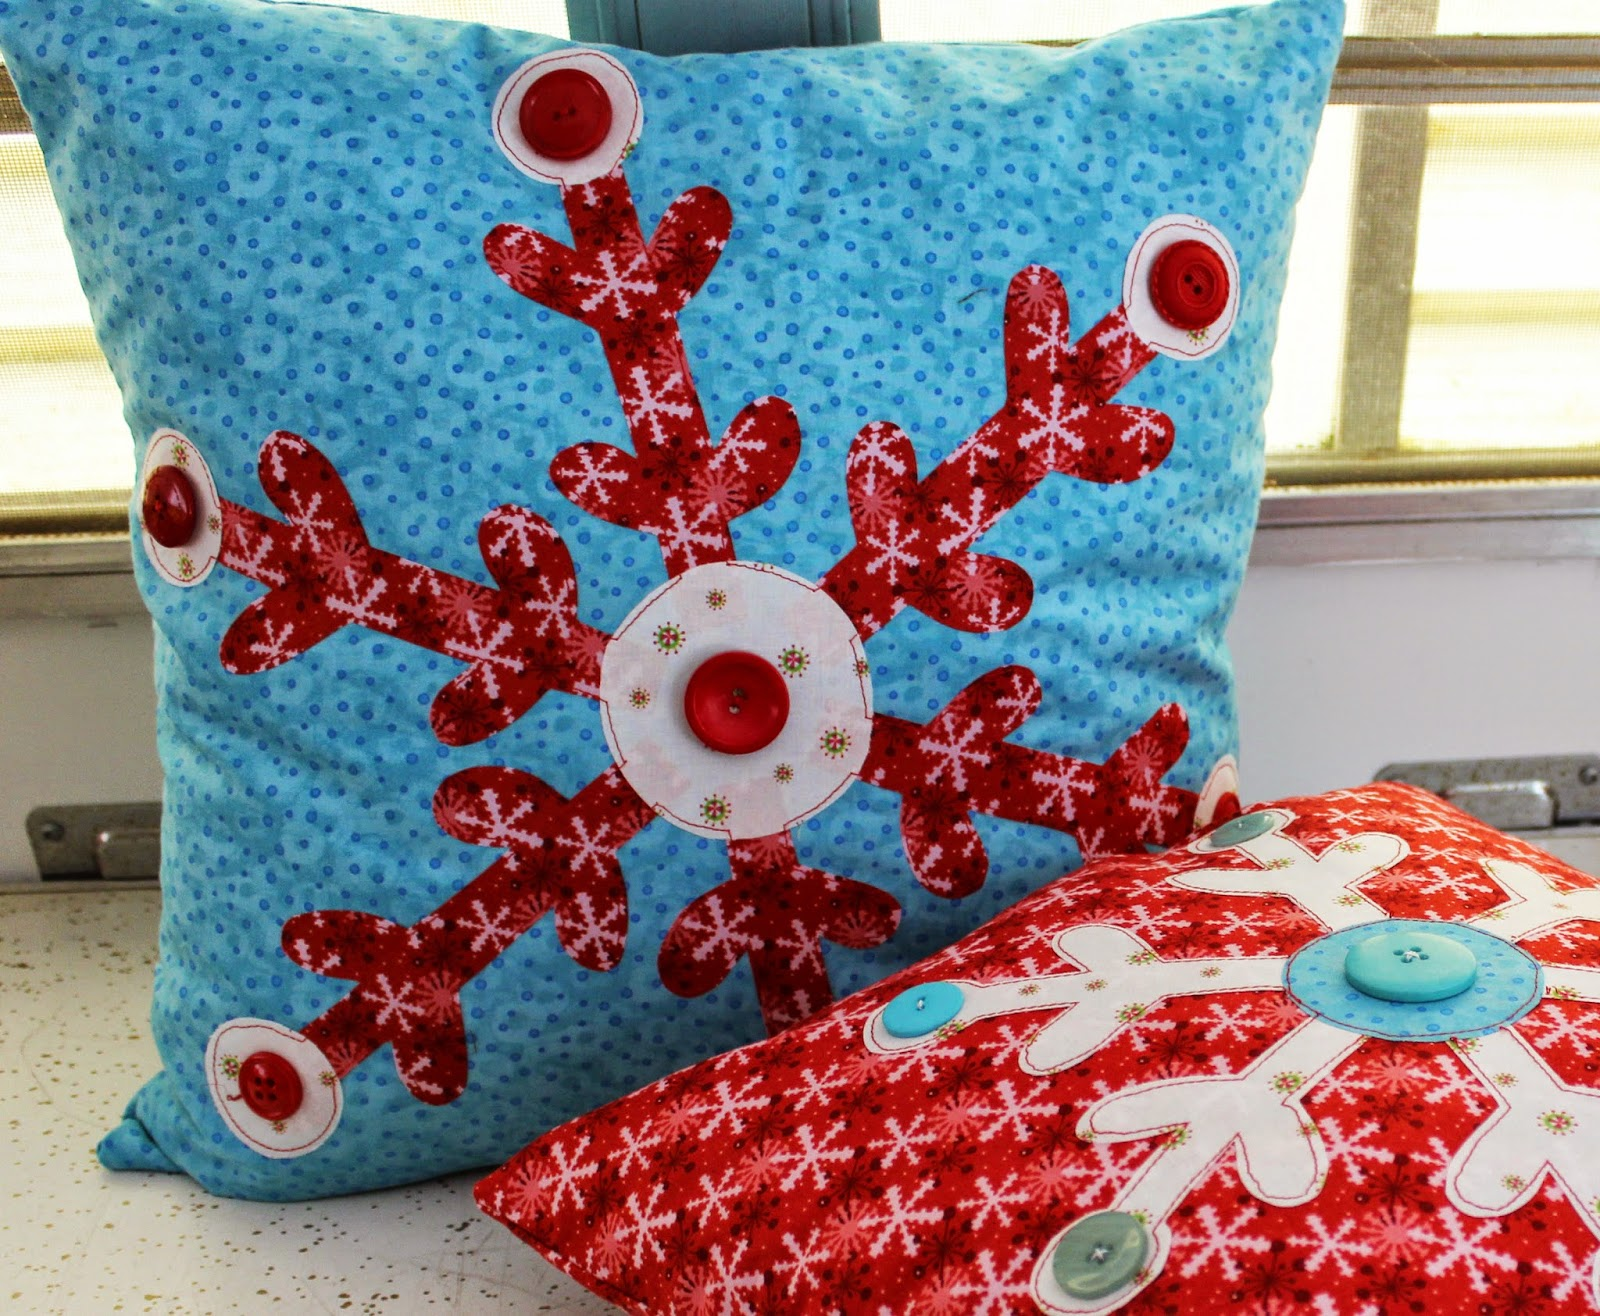 Jennifer jangles blog: snowflake applique pillows holiday project #2